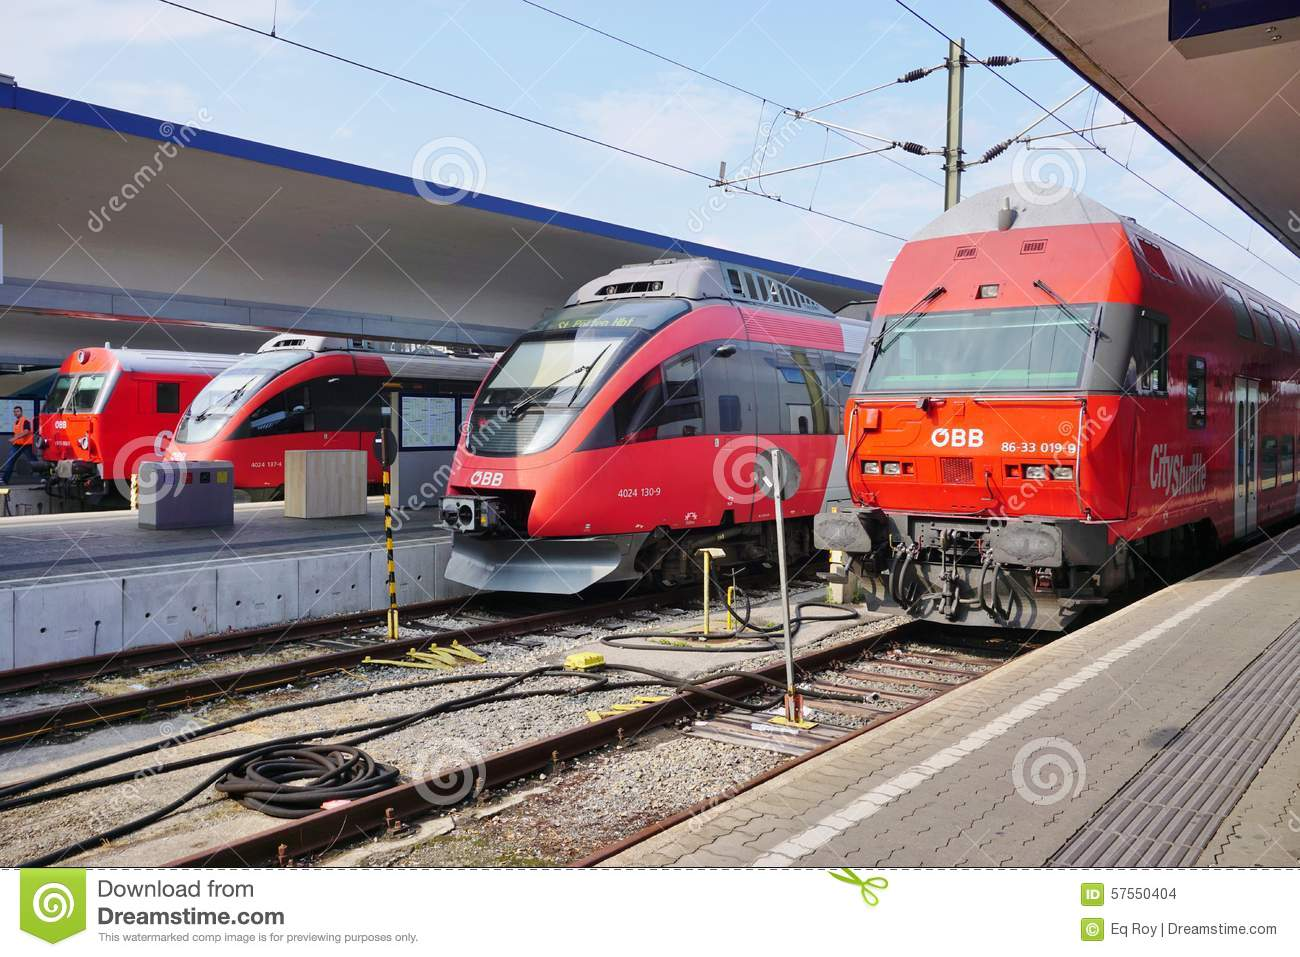 OBB Trains In Austria At The Station In Vienna Editorial Stock Image - Image of european, wien: 57550404